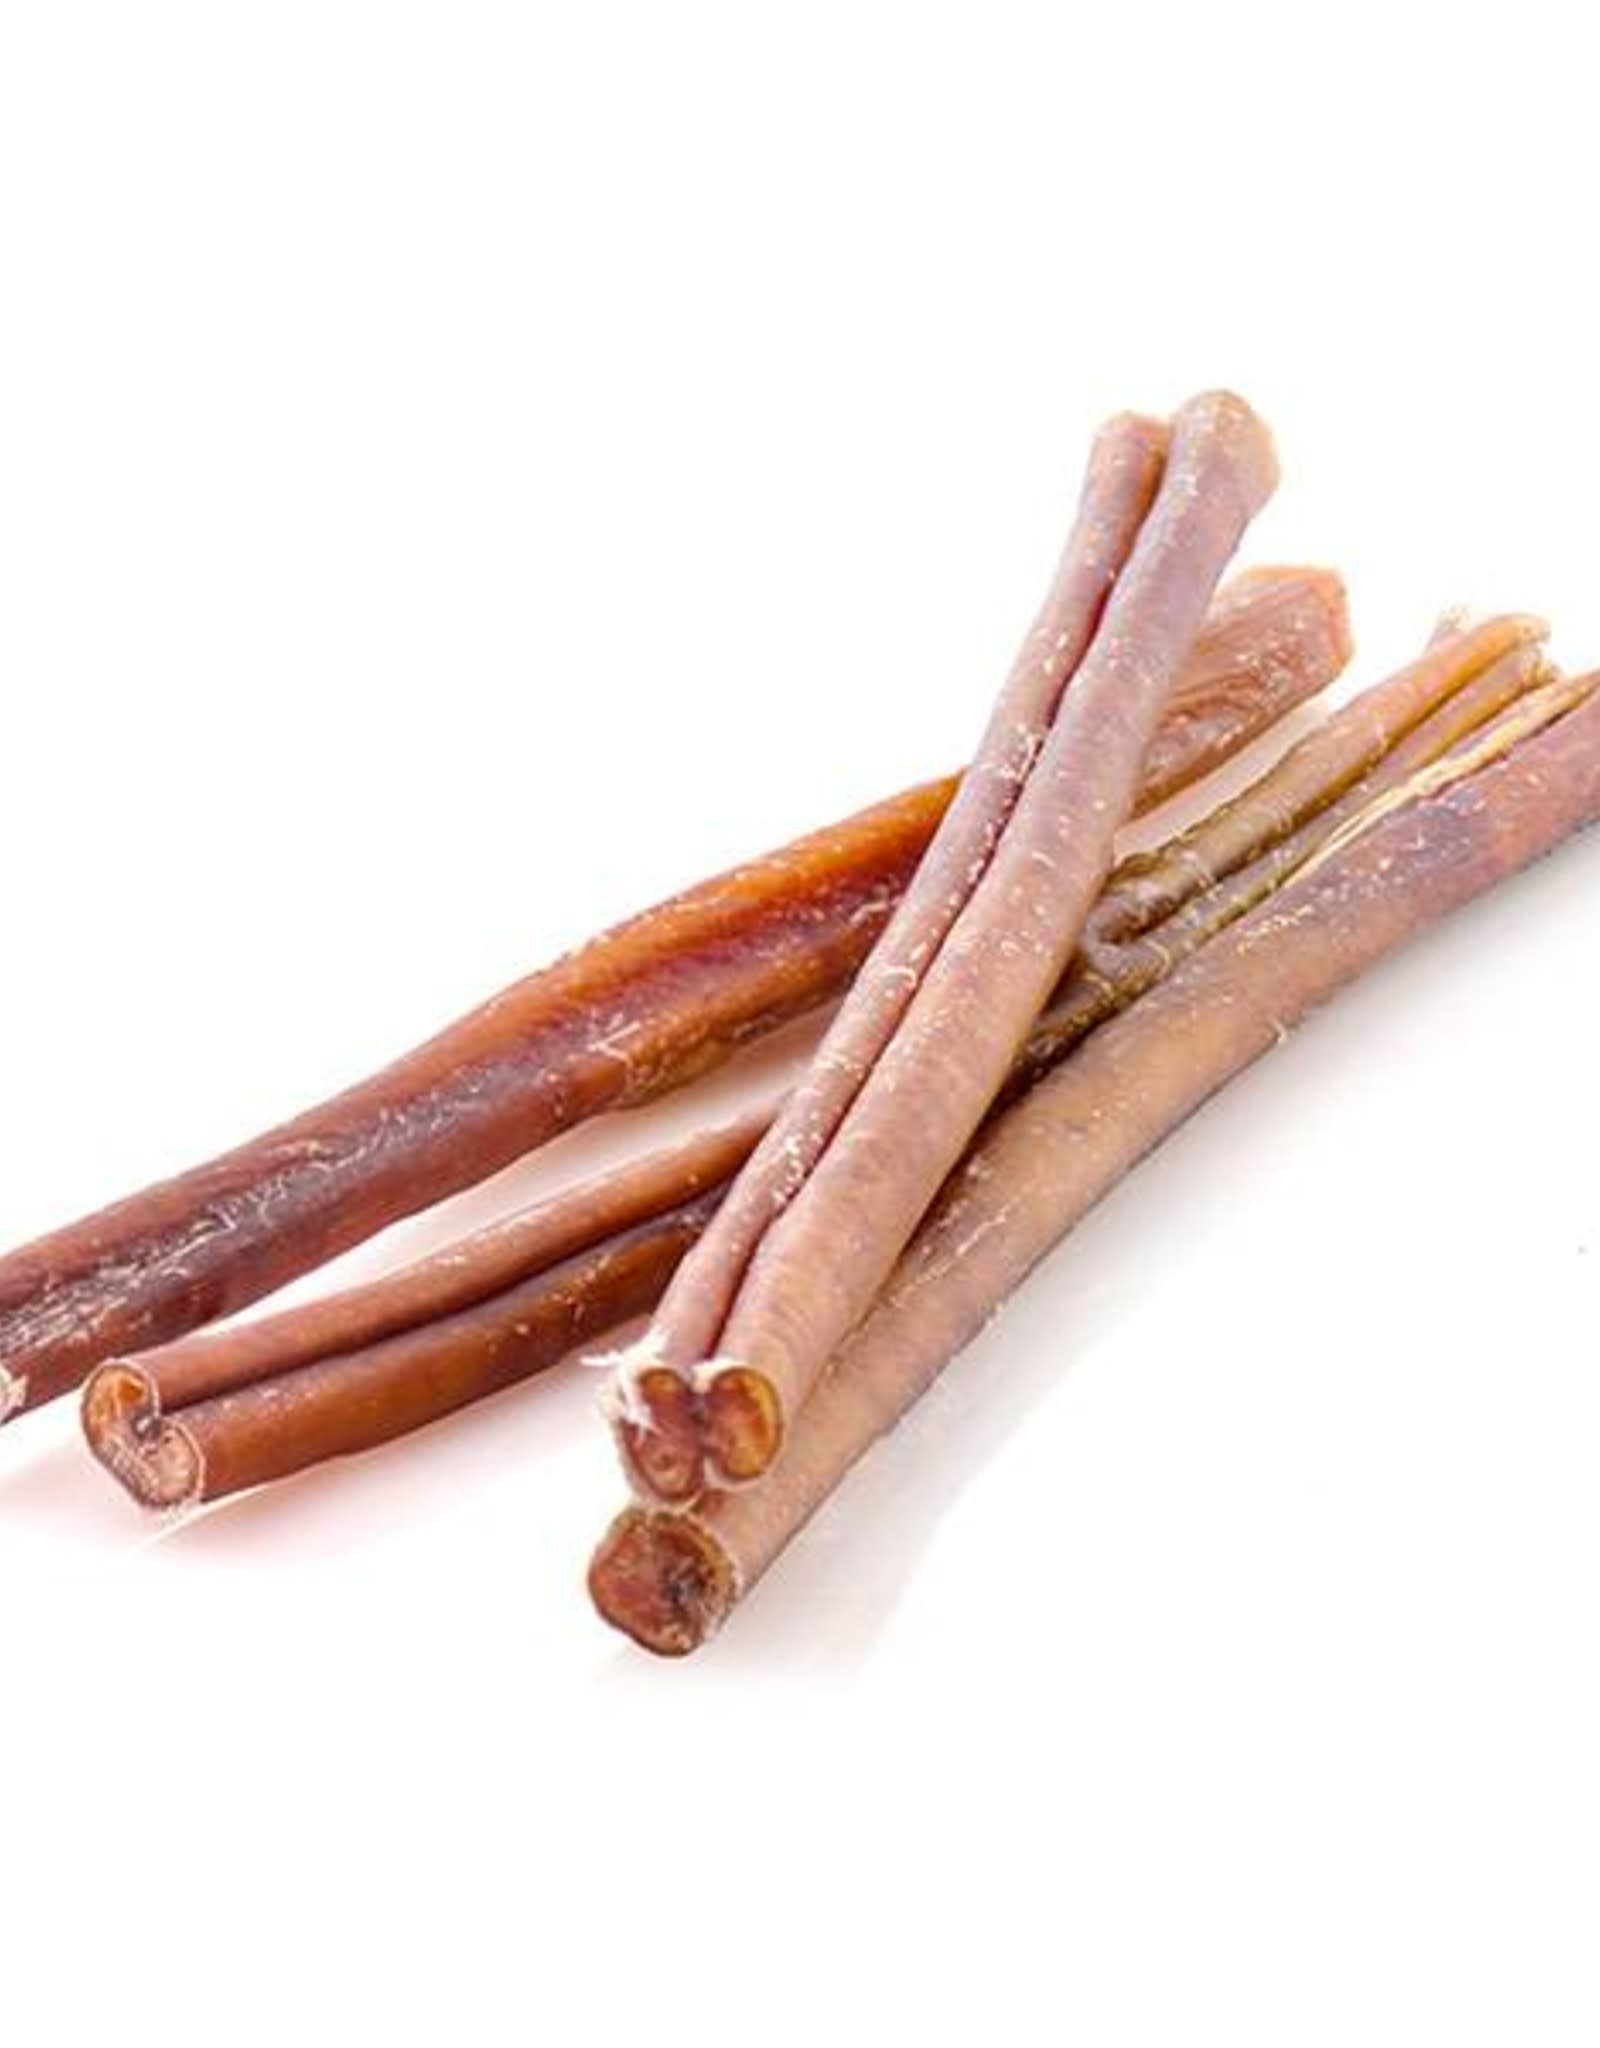 Animago Bully stick